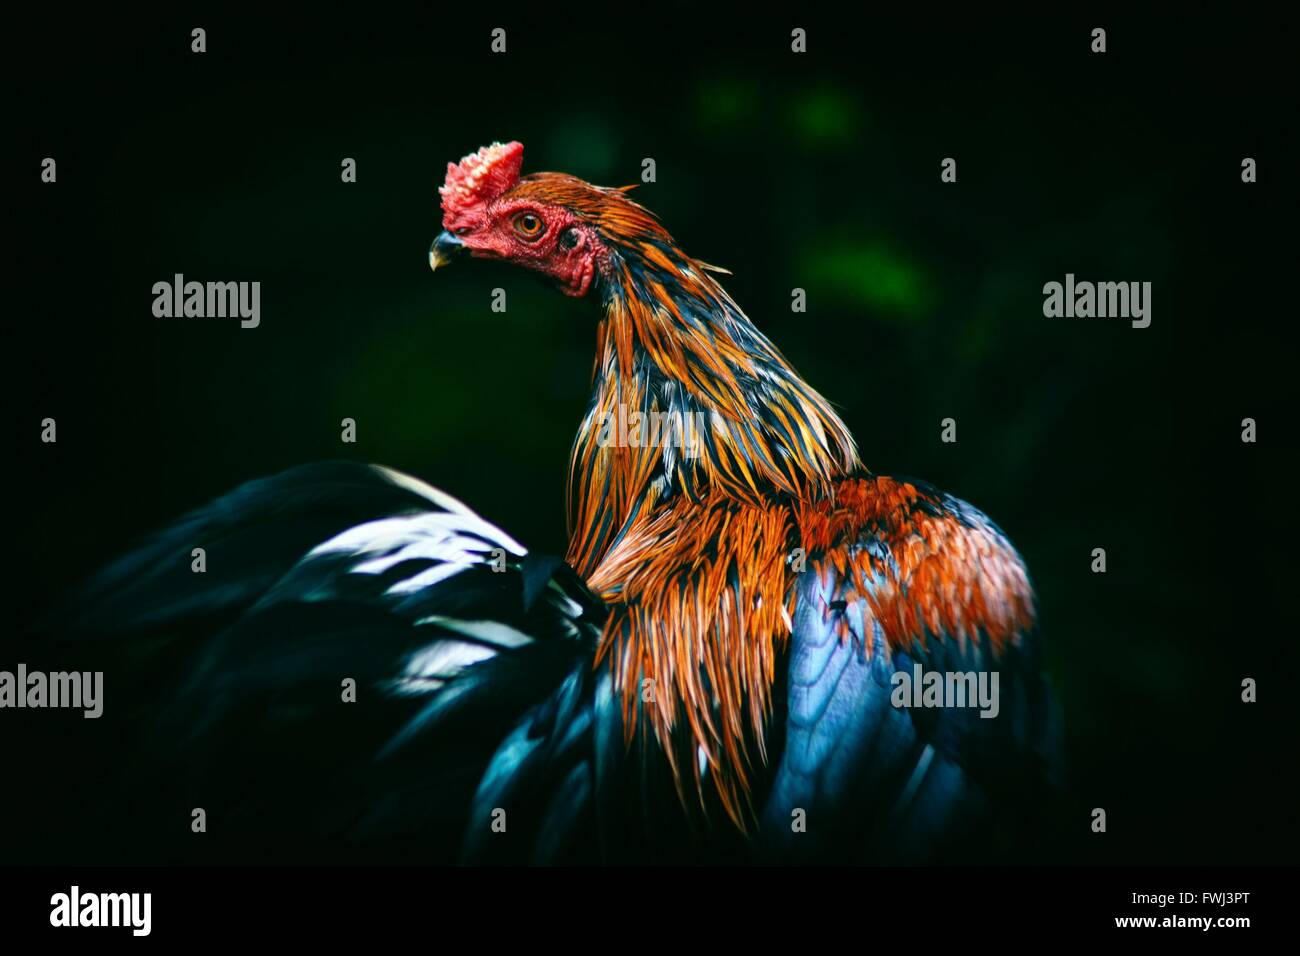 Close-Up Of Rooster - Stock Image